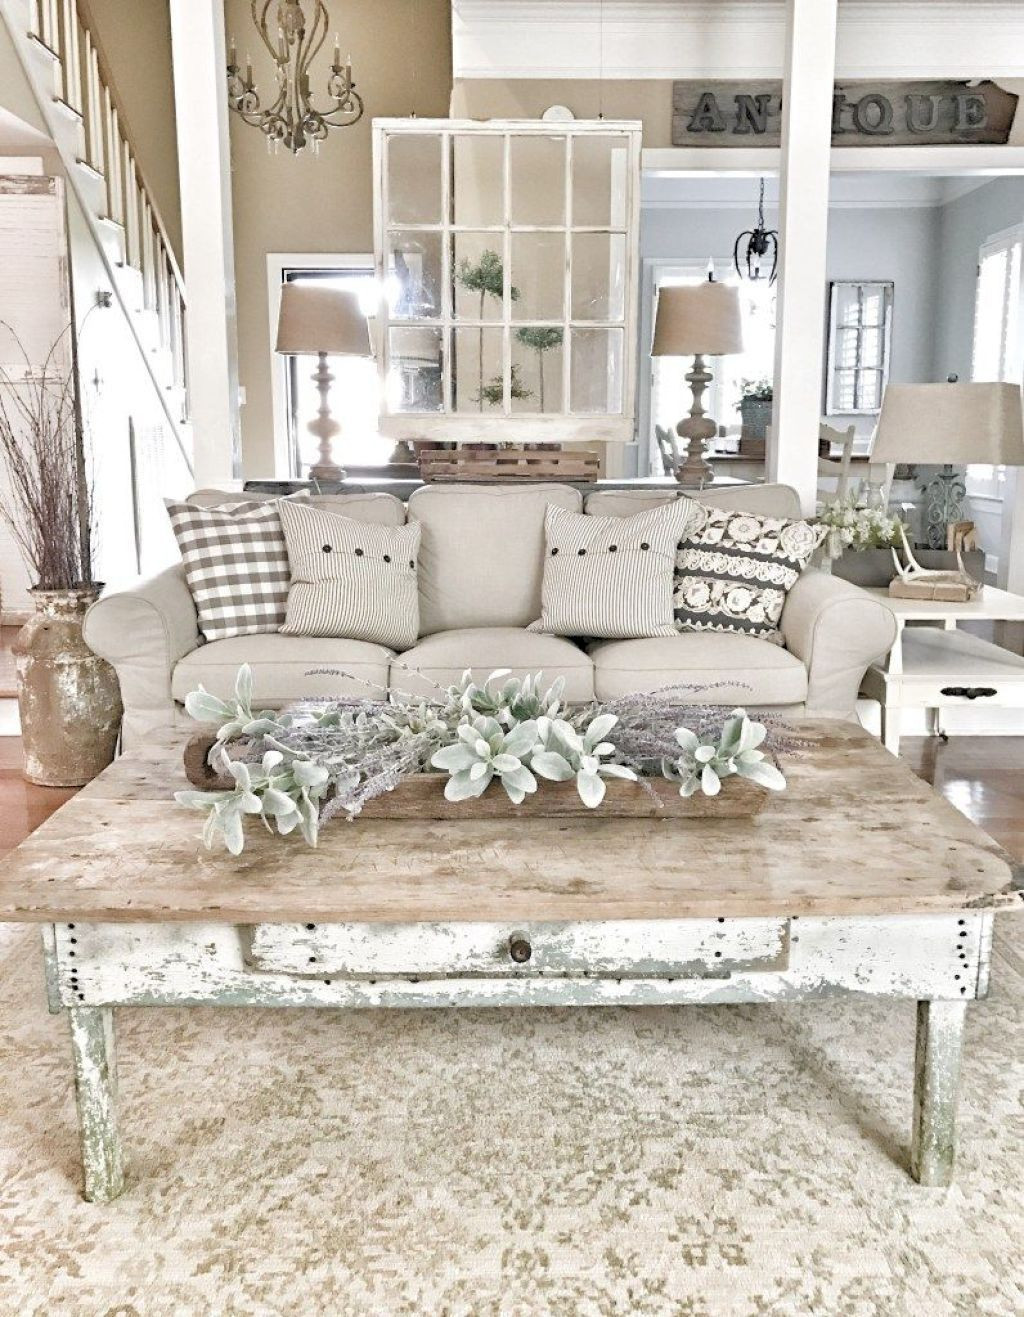 Farmhouse Living Room Decorating Ideas  These 20 Farmhouse Living room Decor and Design Ideas are